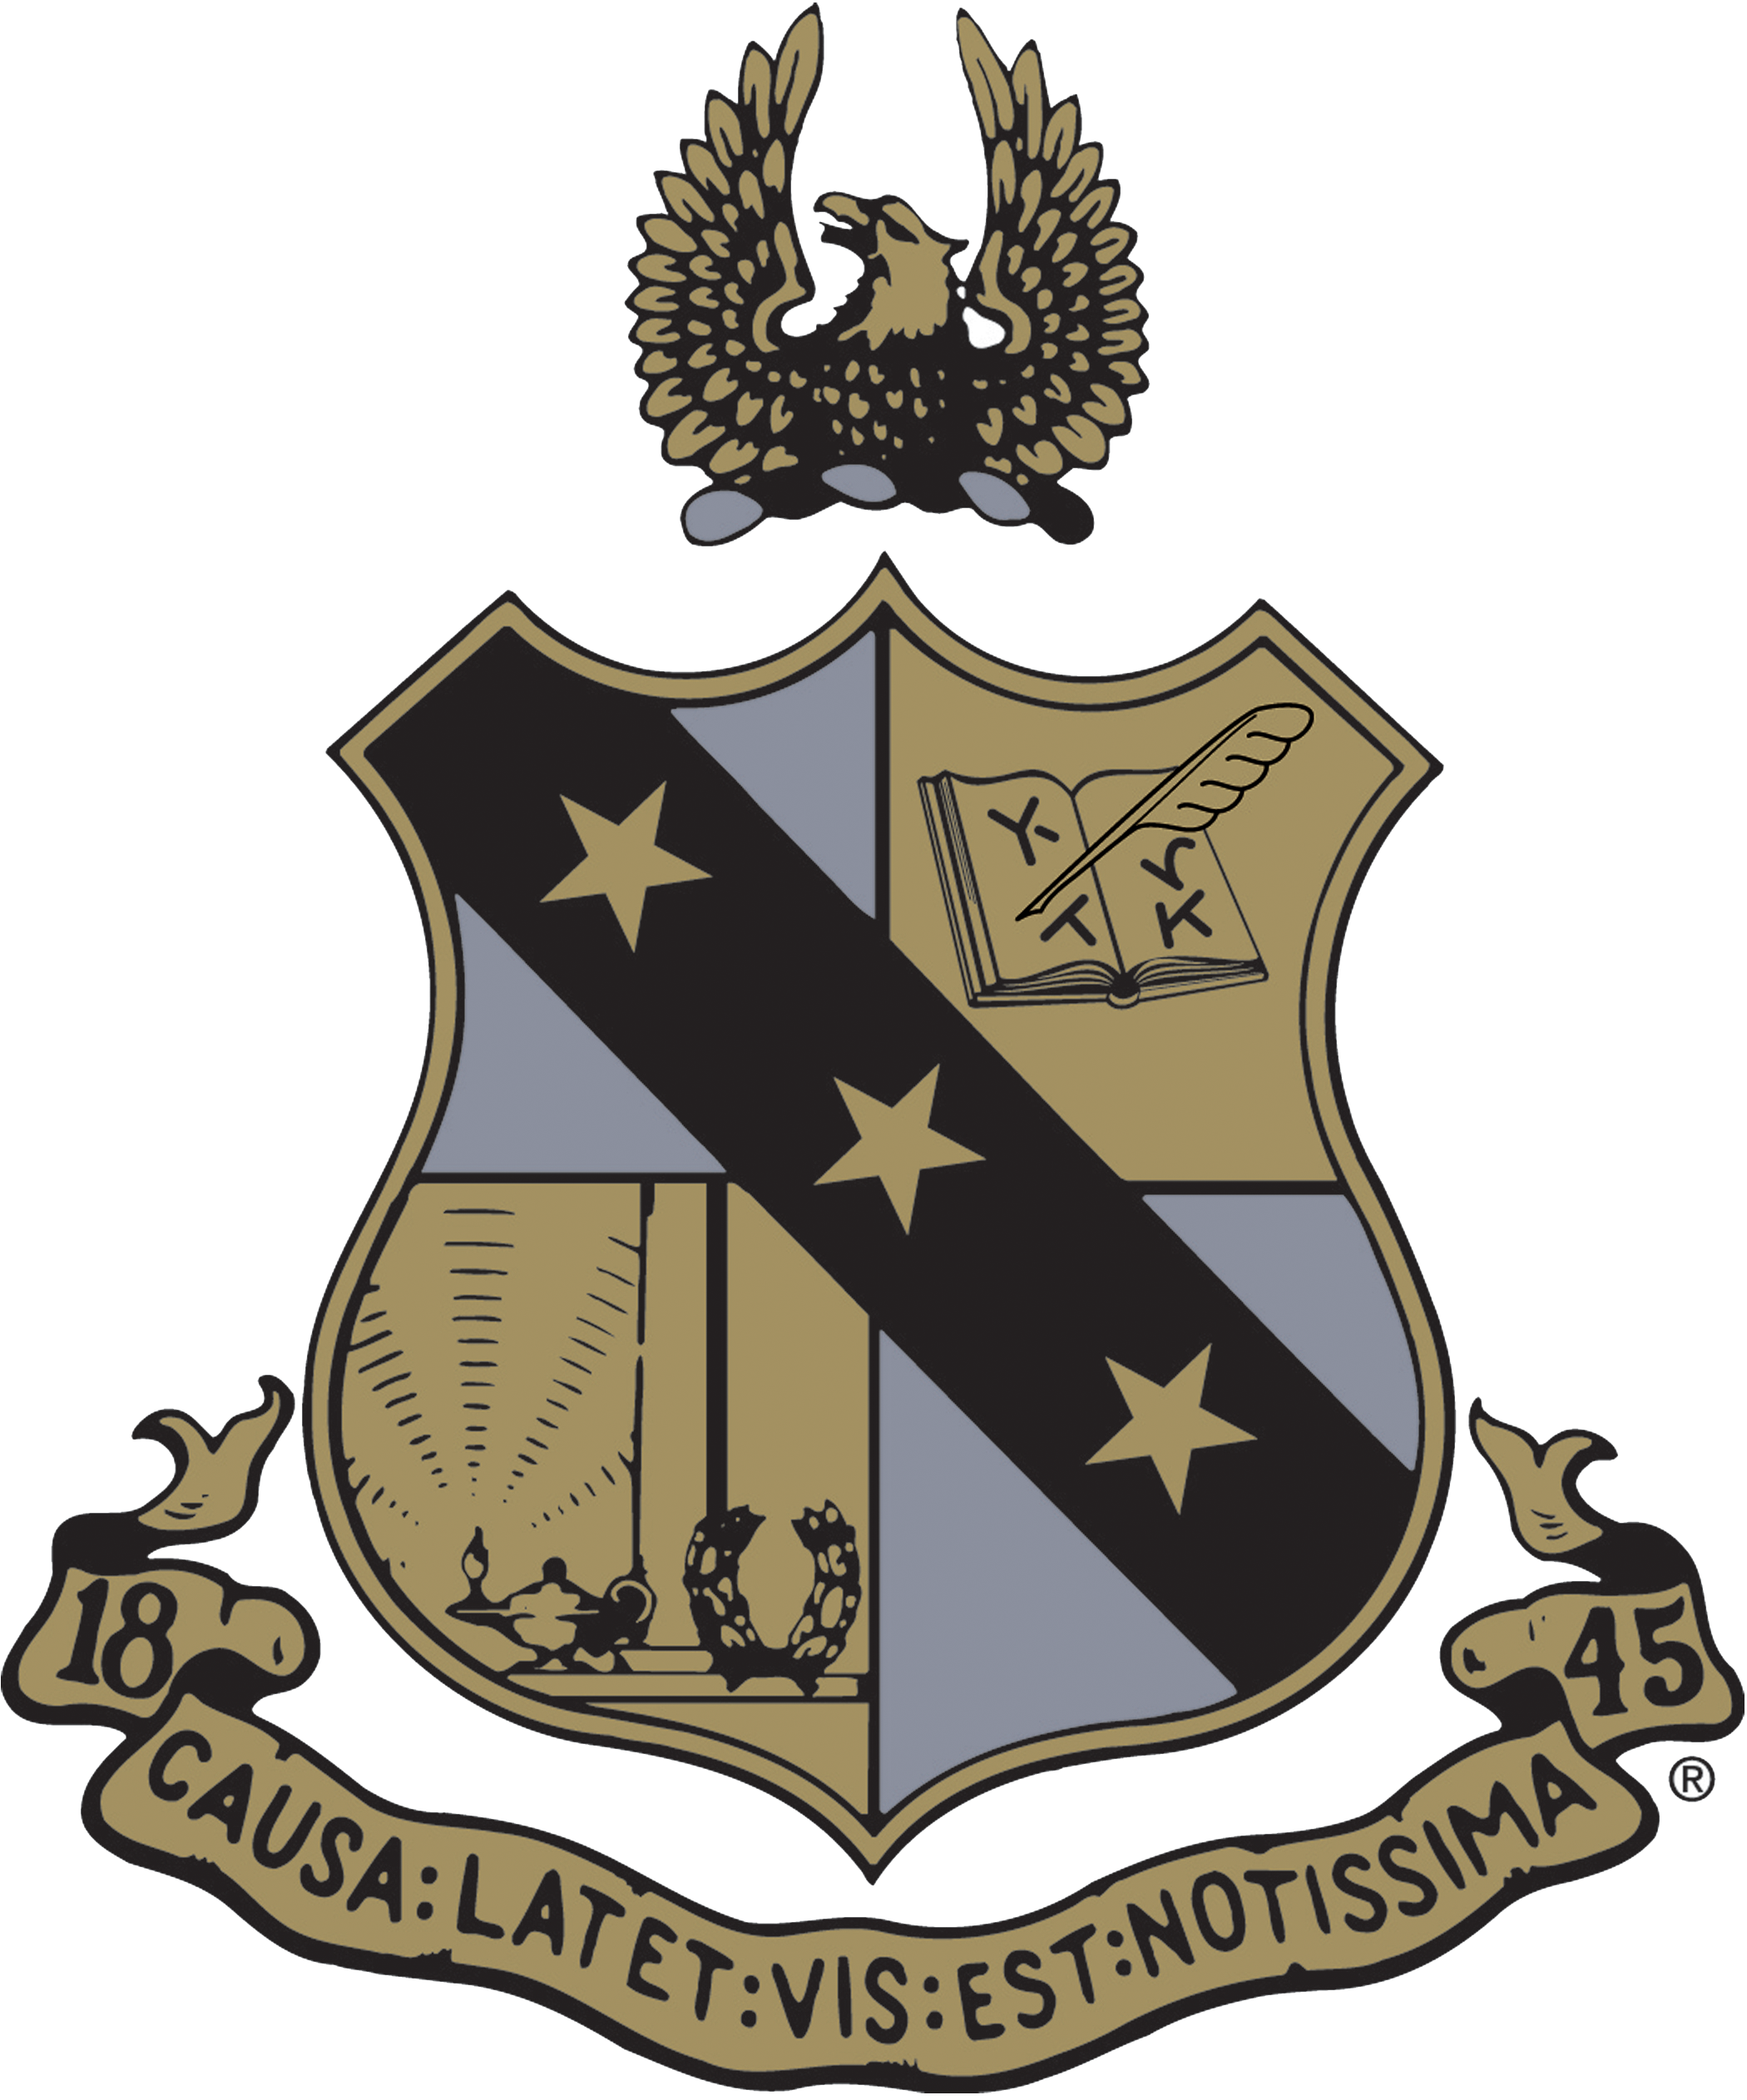 Pi alpha phi crest png. Logos and branding sigma